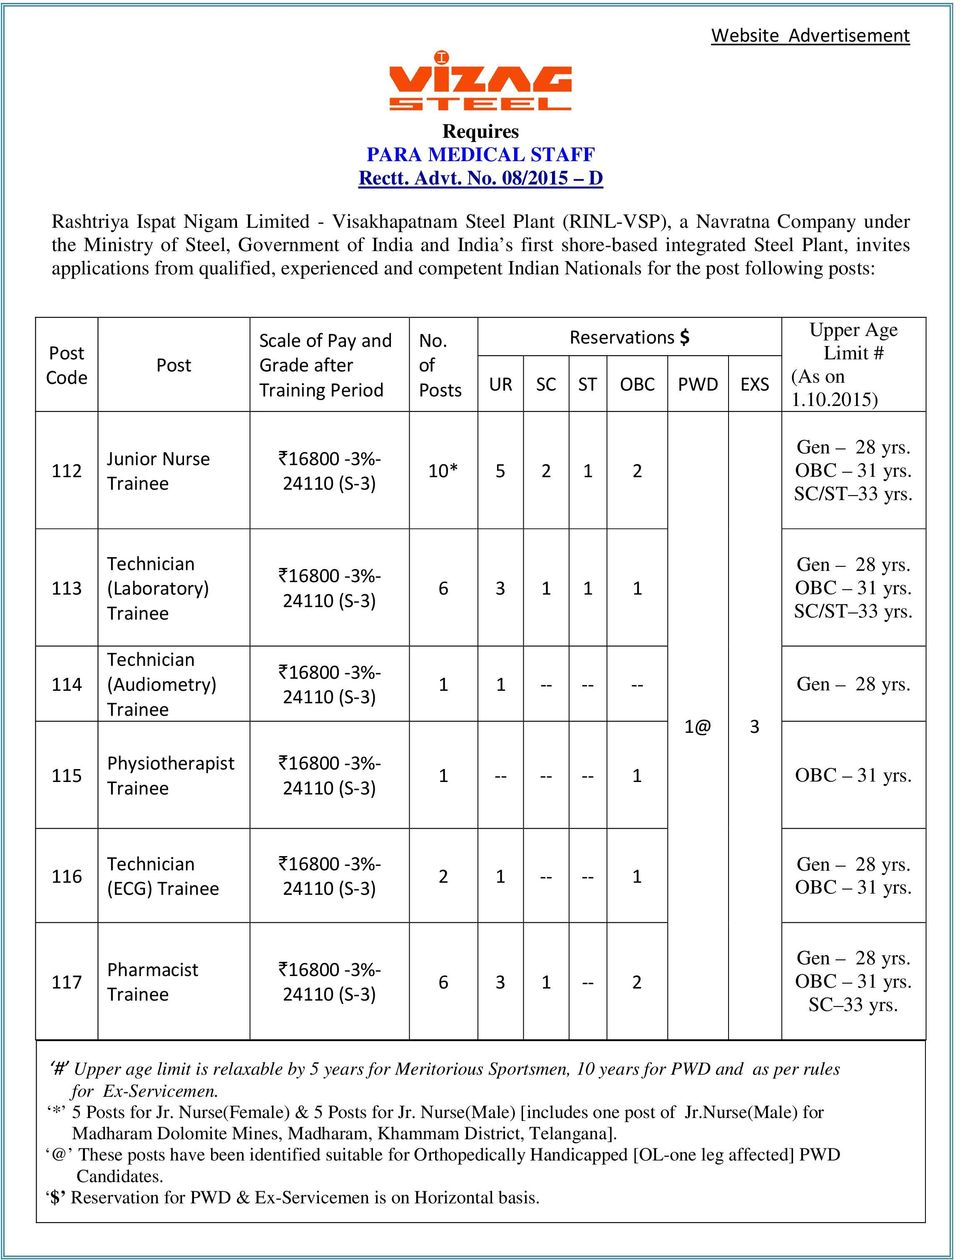 Plant, invites applications from qualified, experienced and competent Indian Nationals for the post following posts: Code Scale of Pay and Grade after Training Period No.